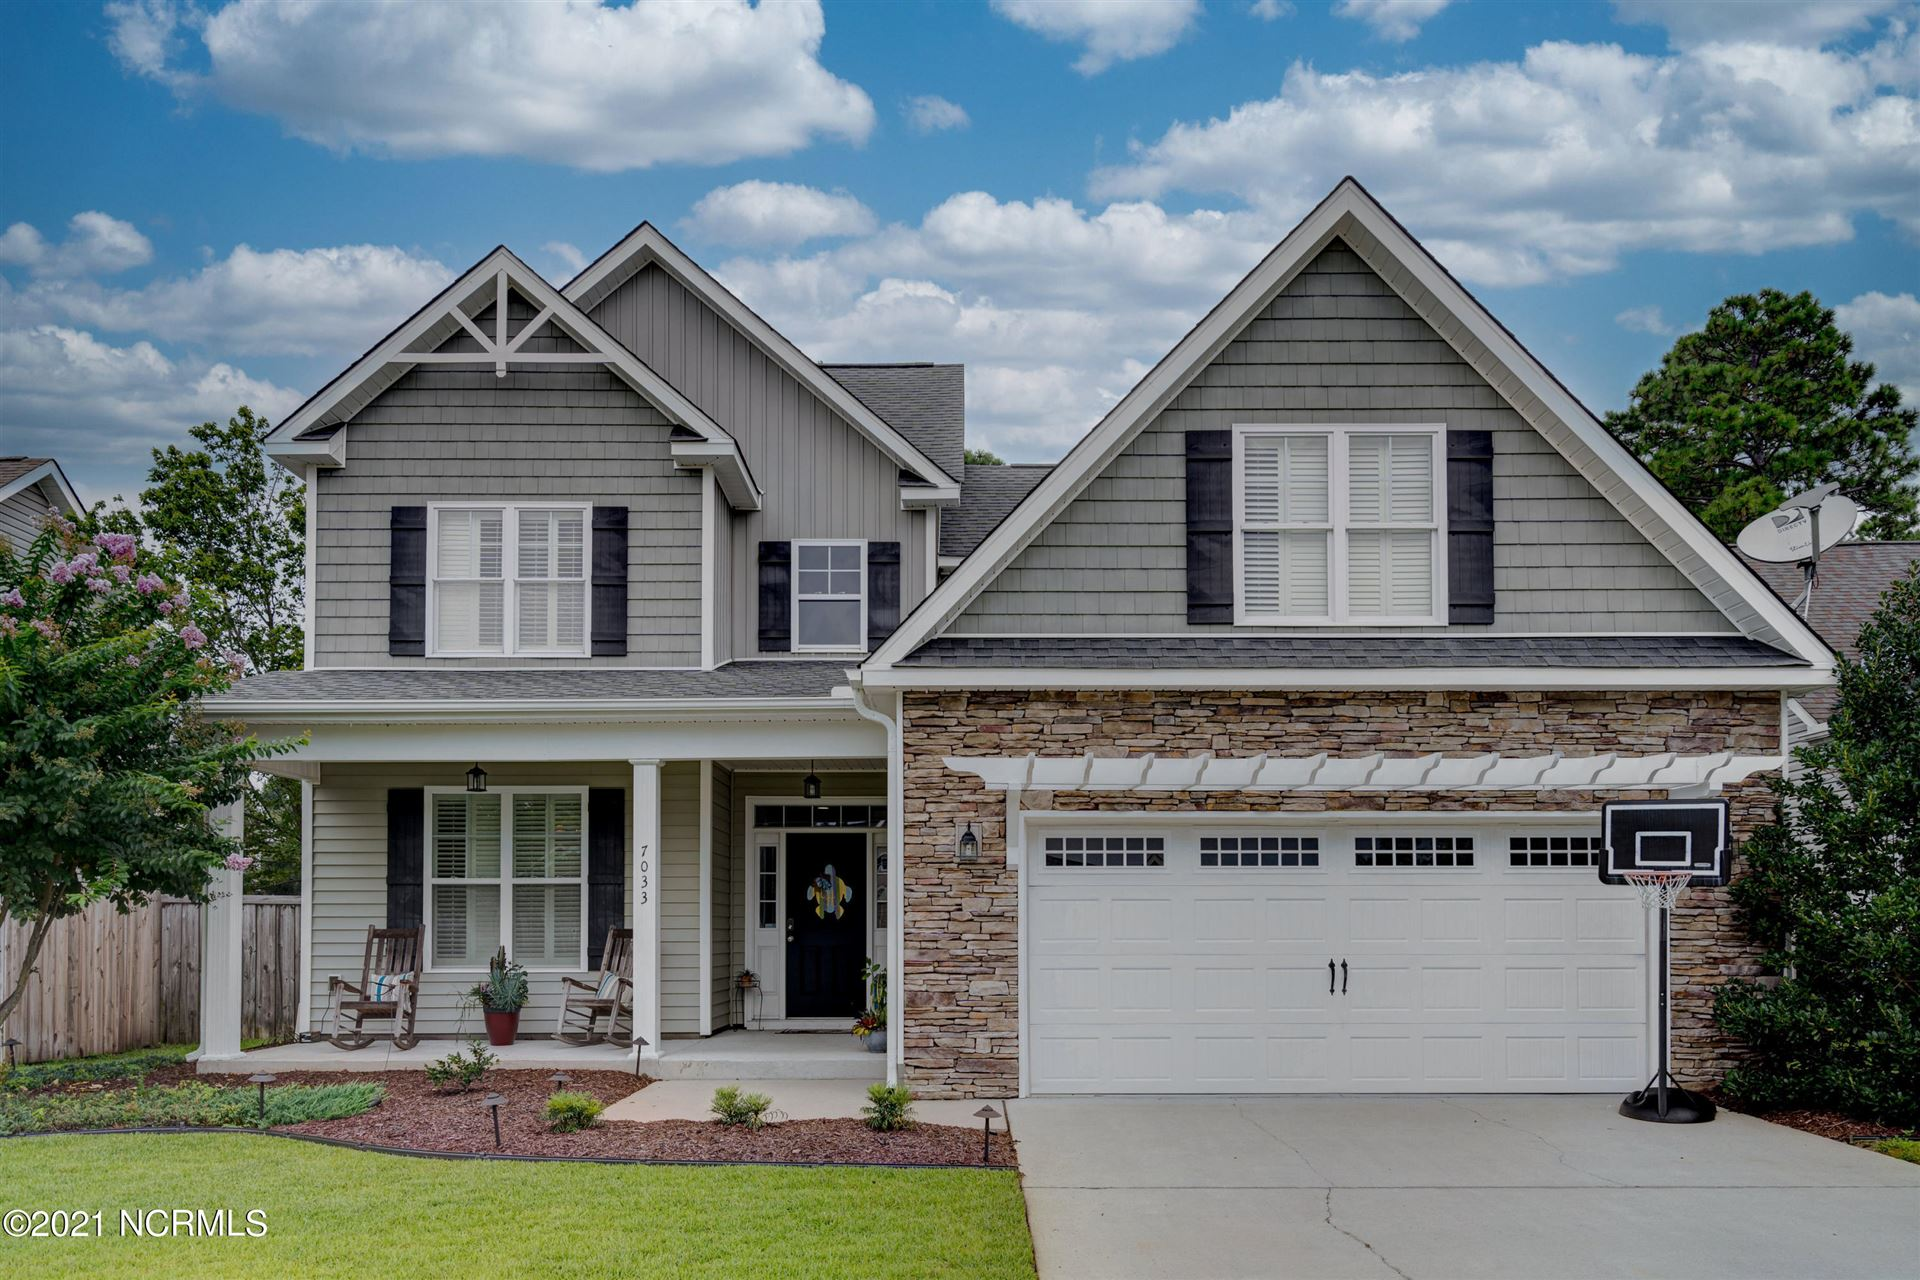 Photo of 7033 Forest Bend Lane, Wilmington, NC 28411 (MLS # 100286358)